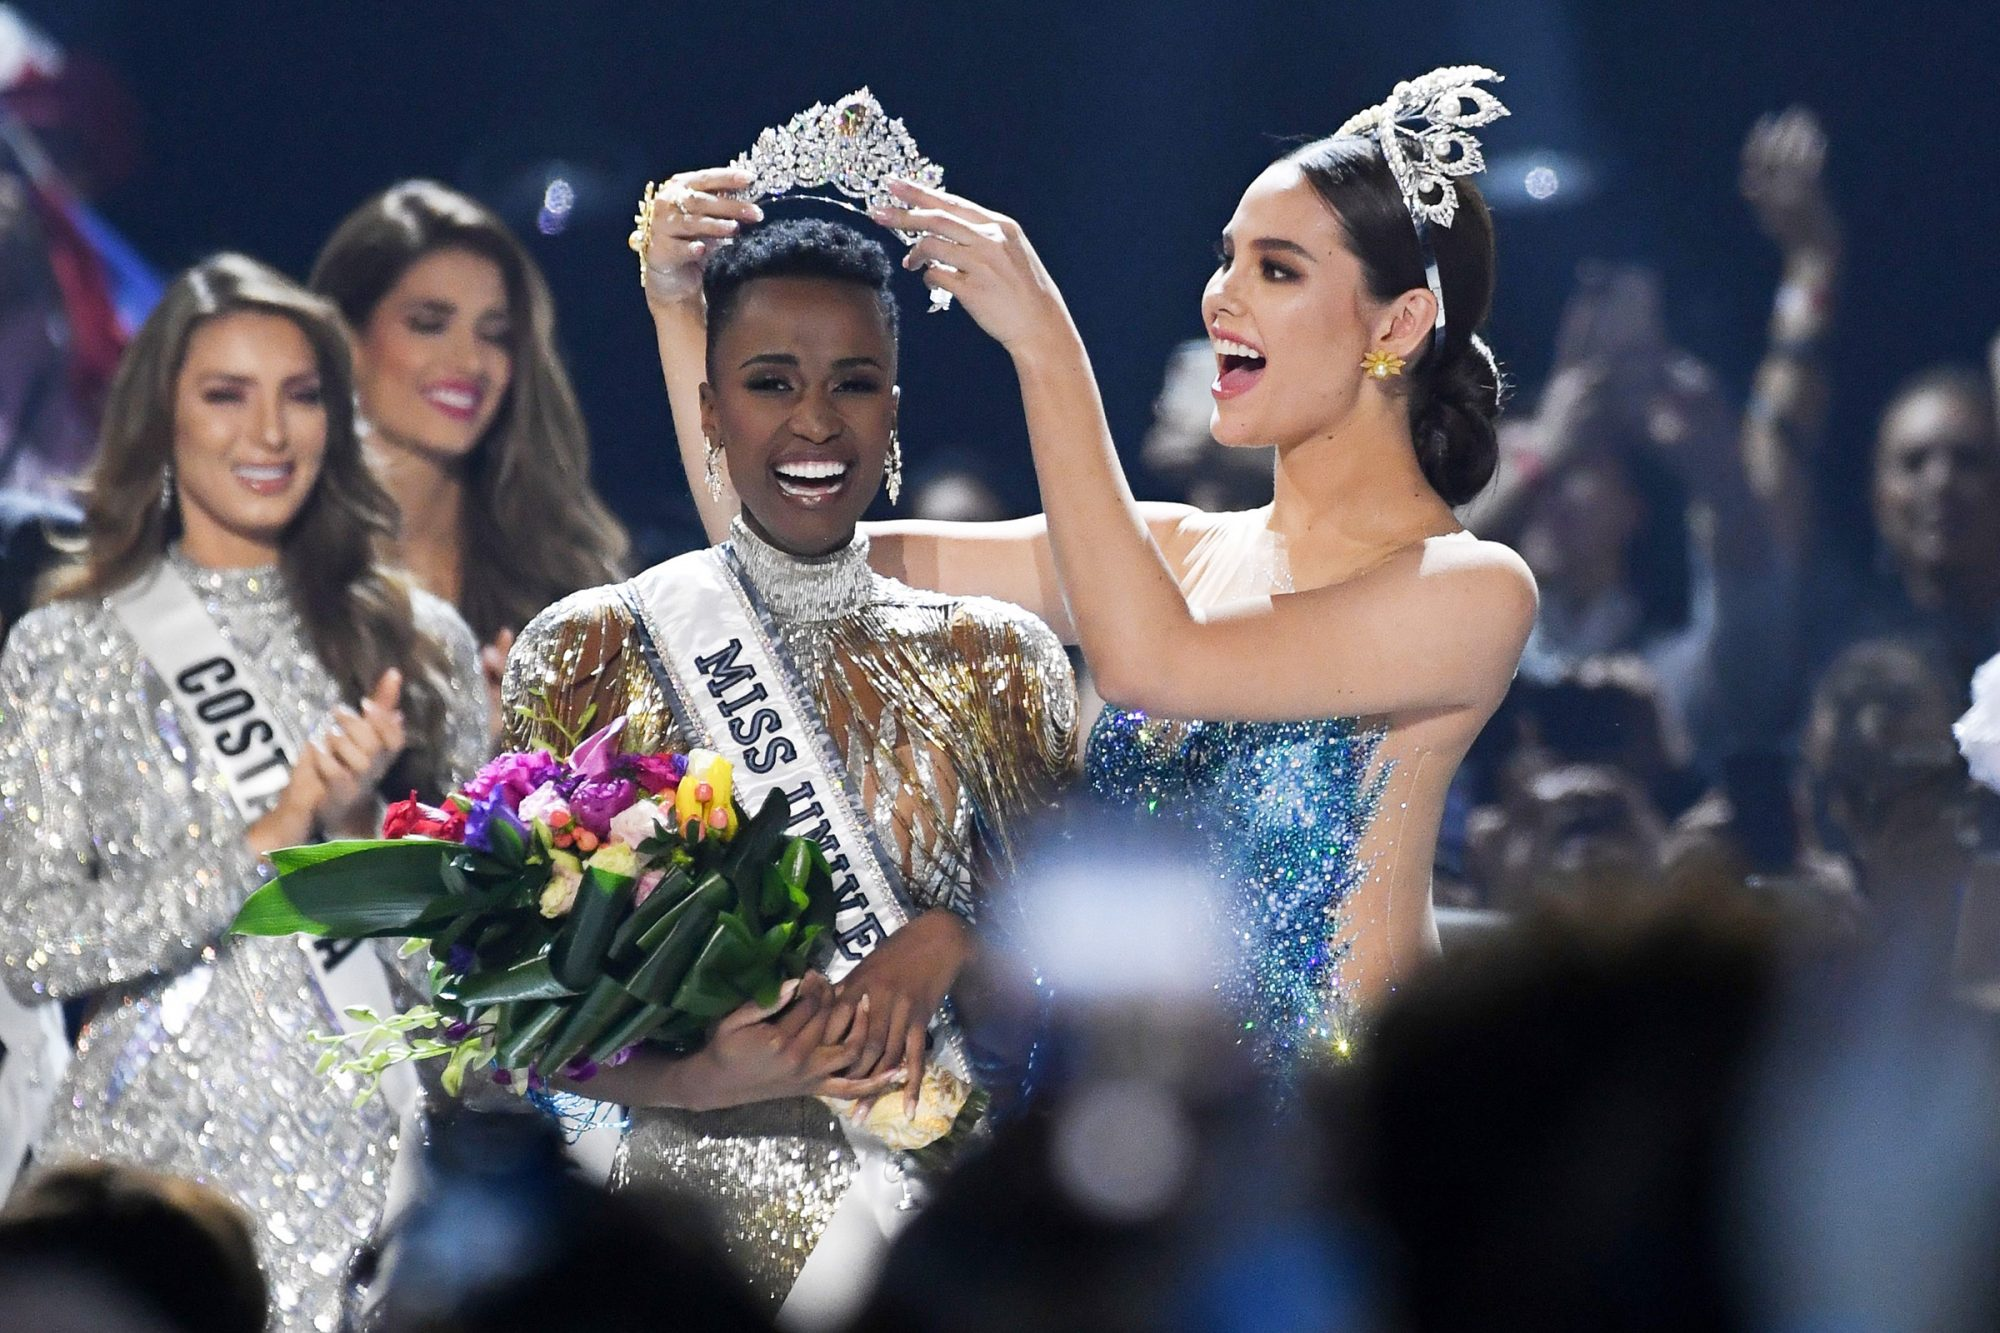 Miss Universe 2018 Philippines' Catriona Gray (R) crowns the new Miss Universe 2019 South Africa's Zozibini Tunzi on stage during the 2019 Miss Universe pageant at the Tyler Perry Studios in Atlanta, Georgia on December 8, 2019